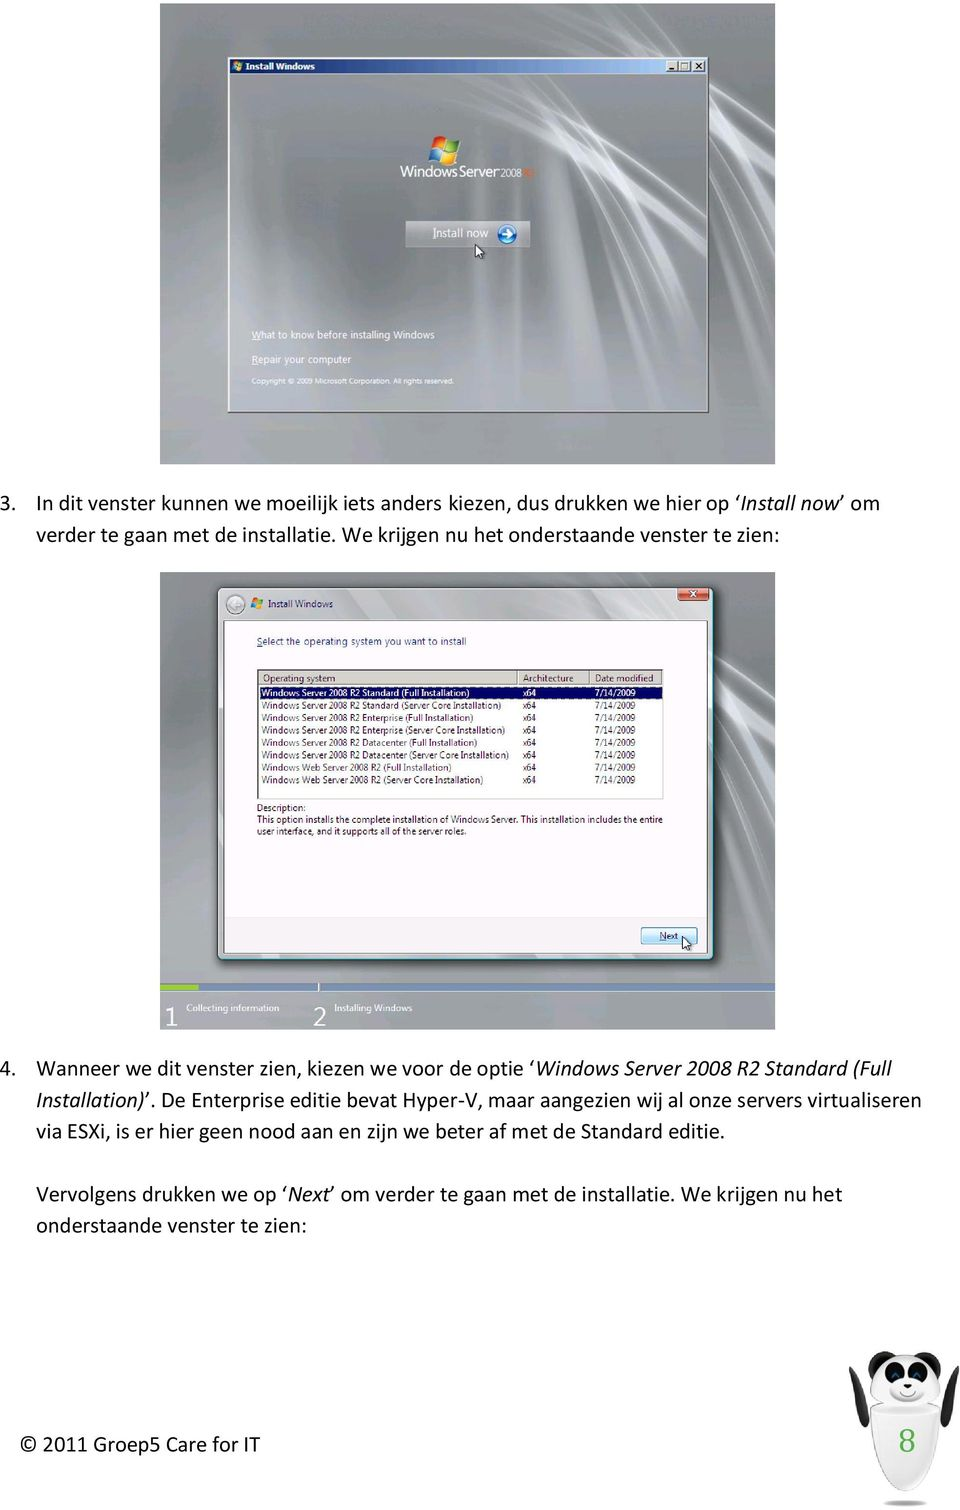 Wanneer we dit venster zien, kiezen we voor de optie Windows Server 2008 R2 Standard (Full Installation).